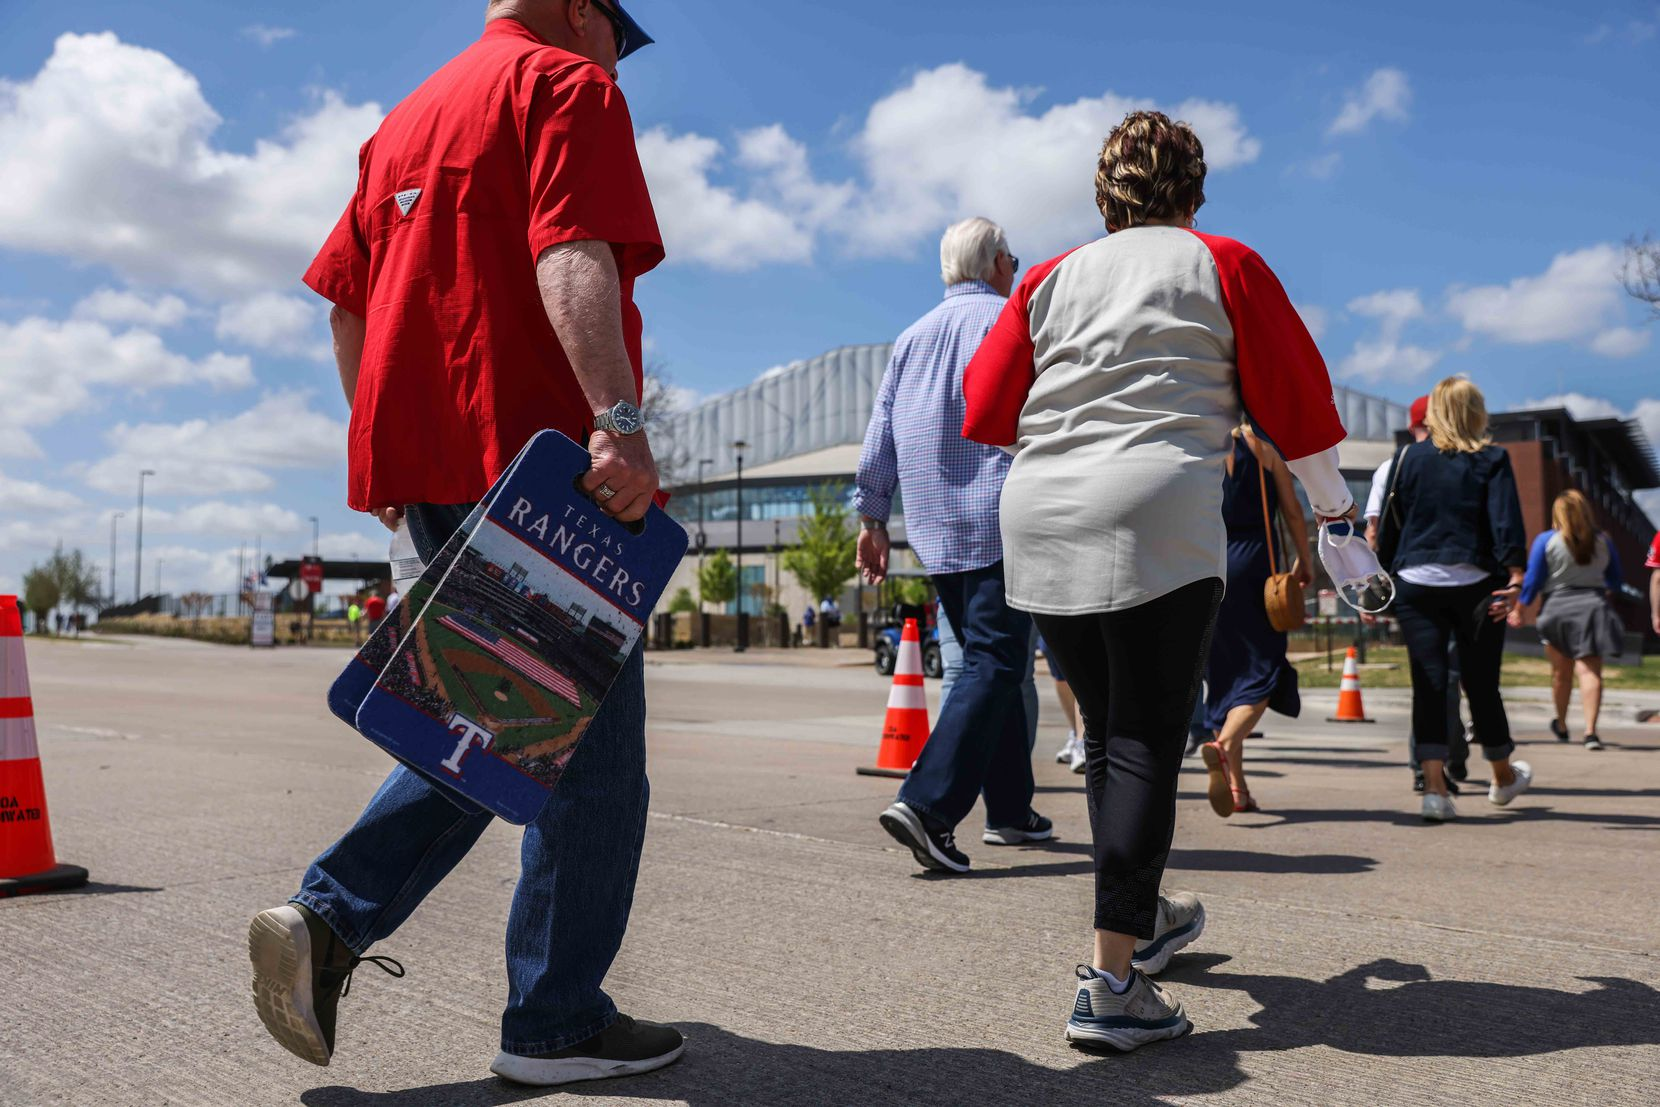 Fans walk to the Globe Life Field entrance to attend the game between Texas Rangers and Toronto Blue Jays on opening day in Arlington, Texas on Monday, April 5, 2021. (Lola Gomez/The Dallas Morning News)